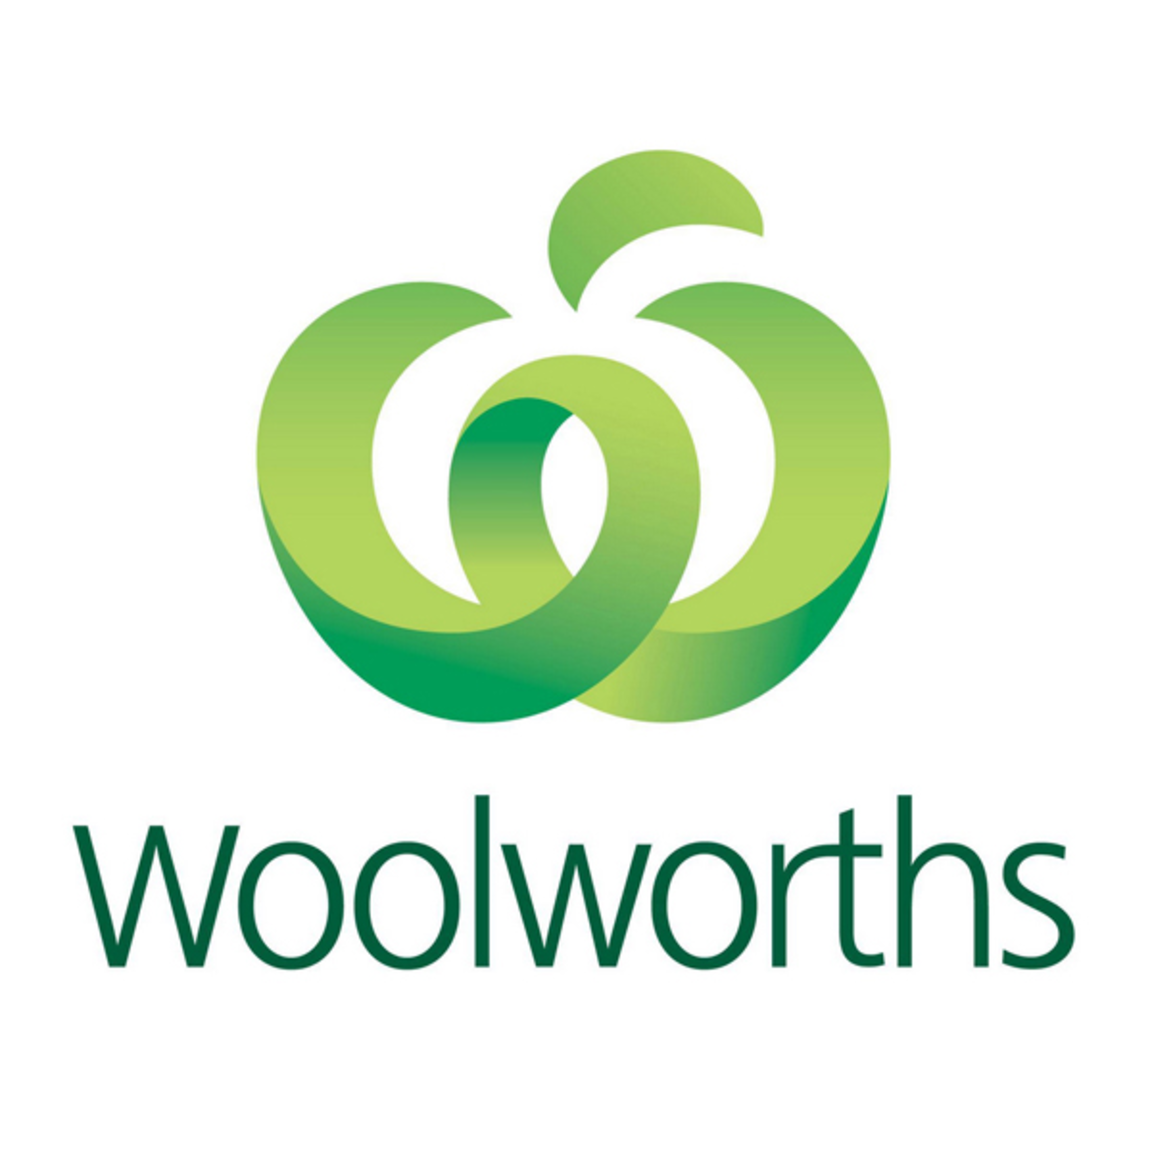 Woolworths at westfield garden city negle Image collections